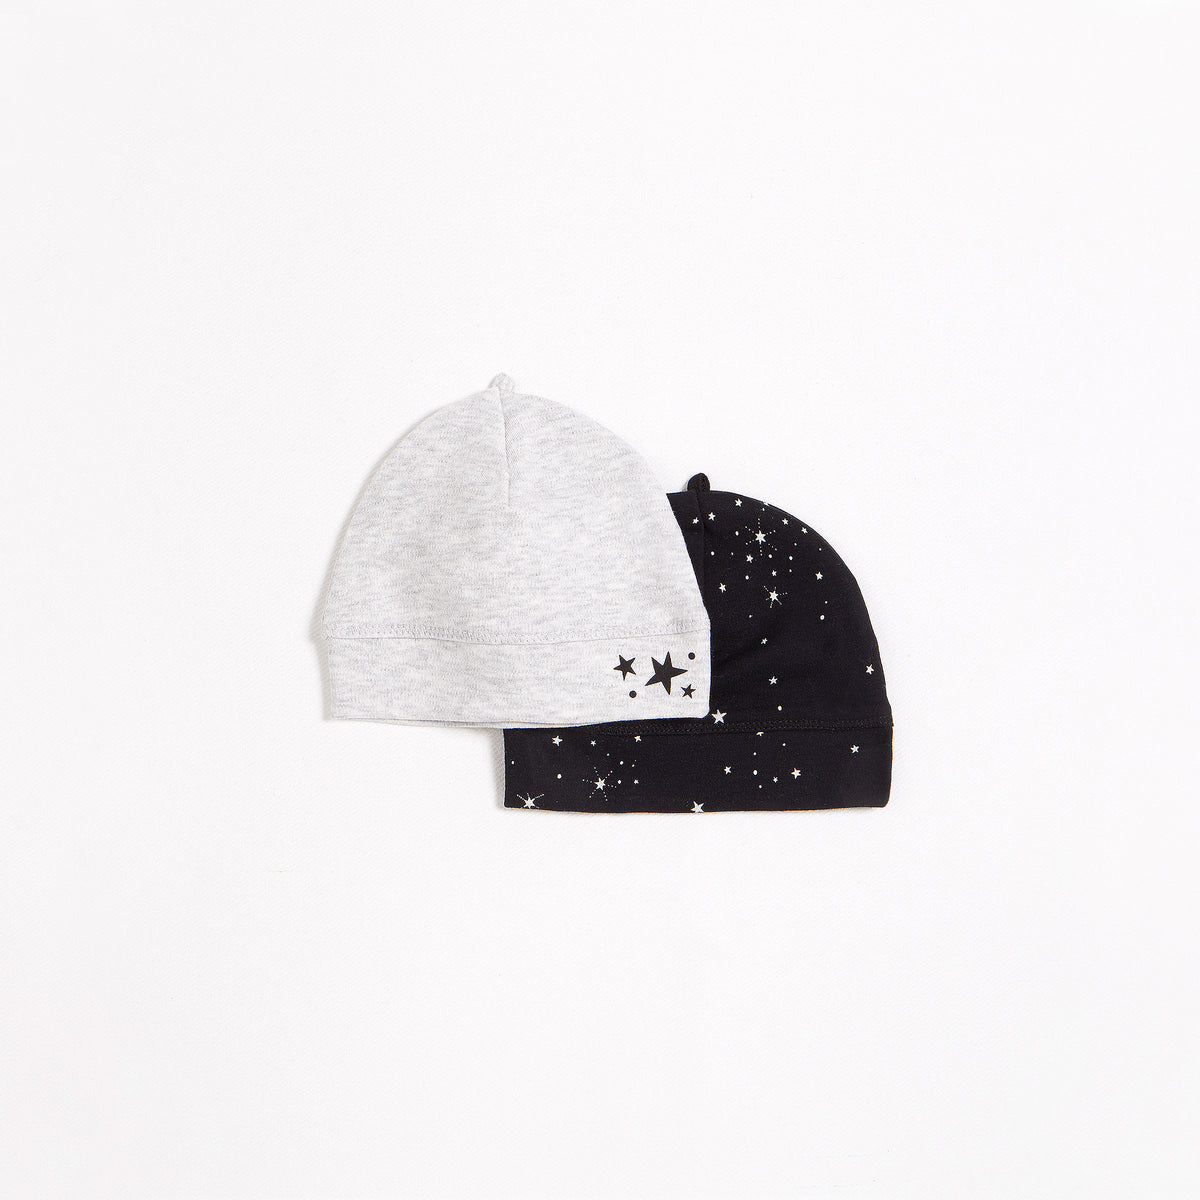 """Starry Night"" Beanies – 2 Pack"